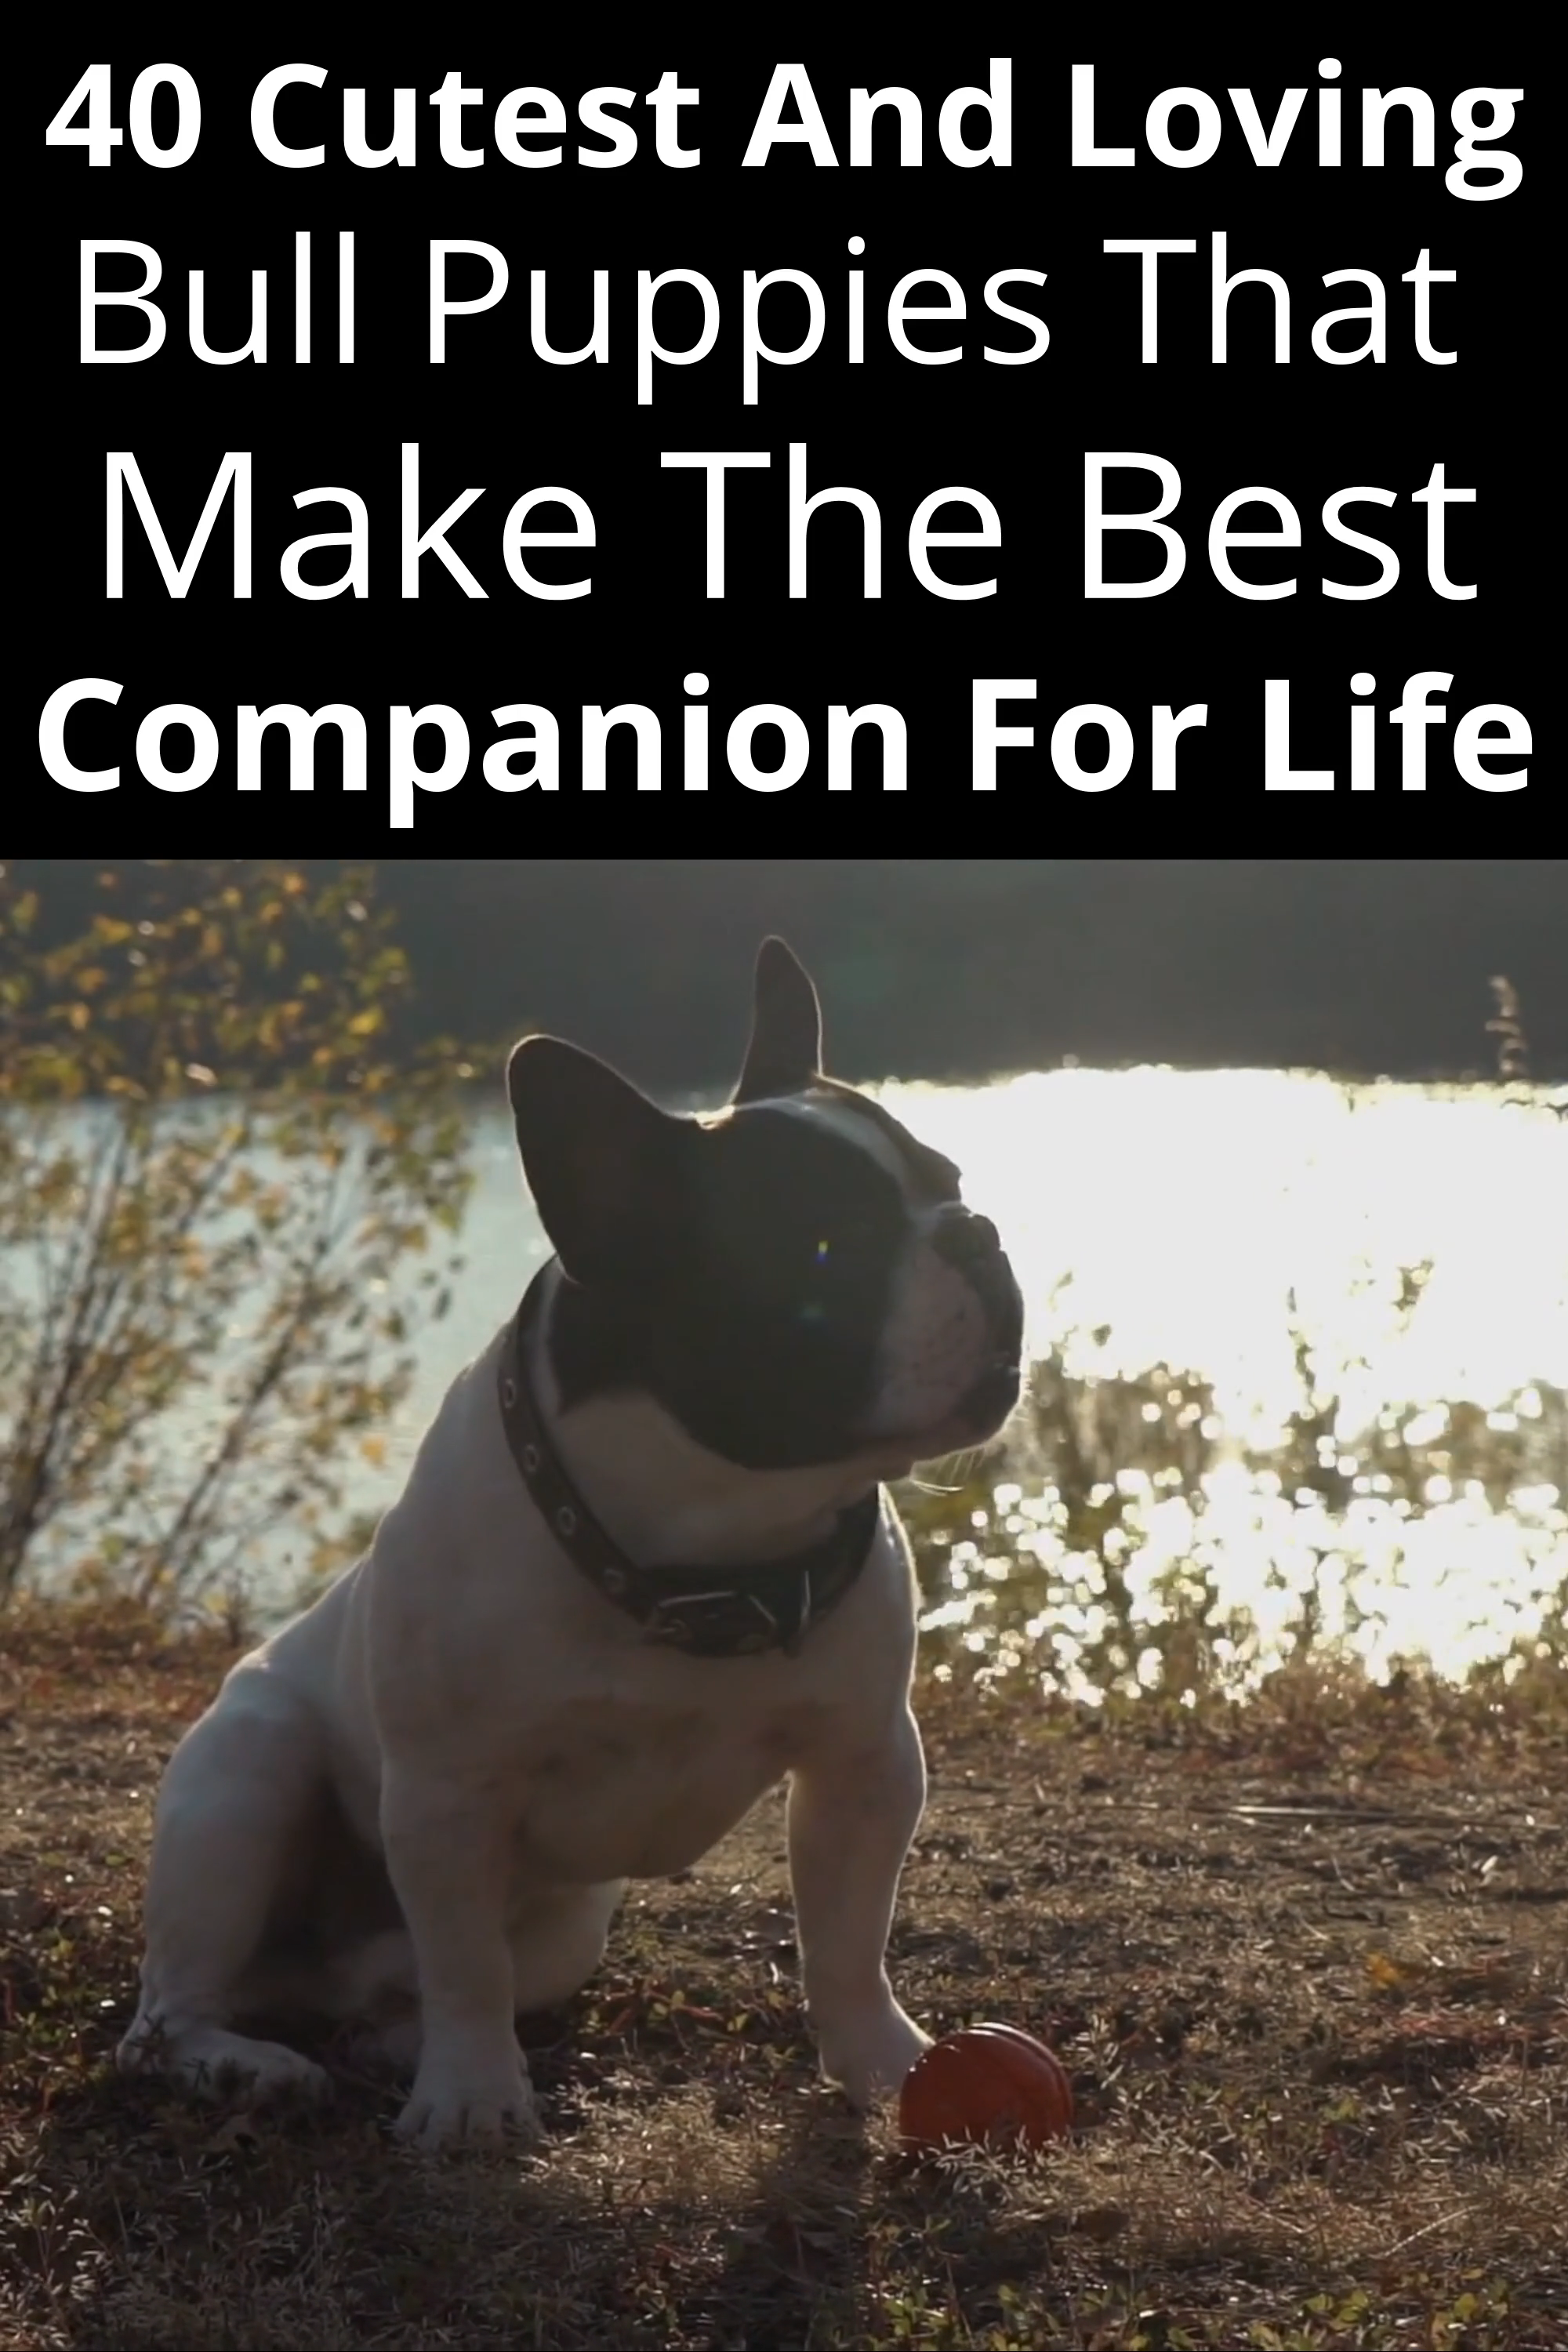 40 Cutest And Loving Bull Puppies That Make The Best Companion For Life ,  #Bull #carpettypes #Companion #Cutest #life #Loving #Puppies